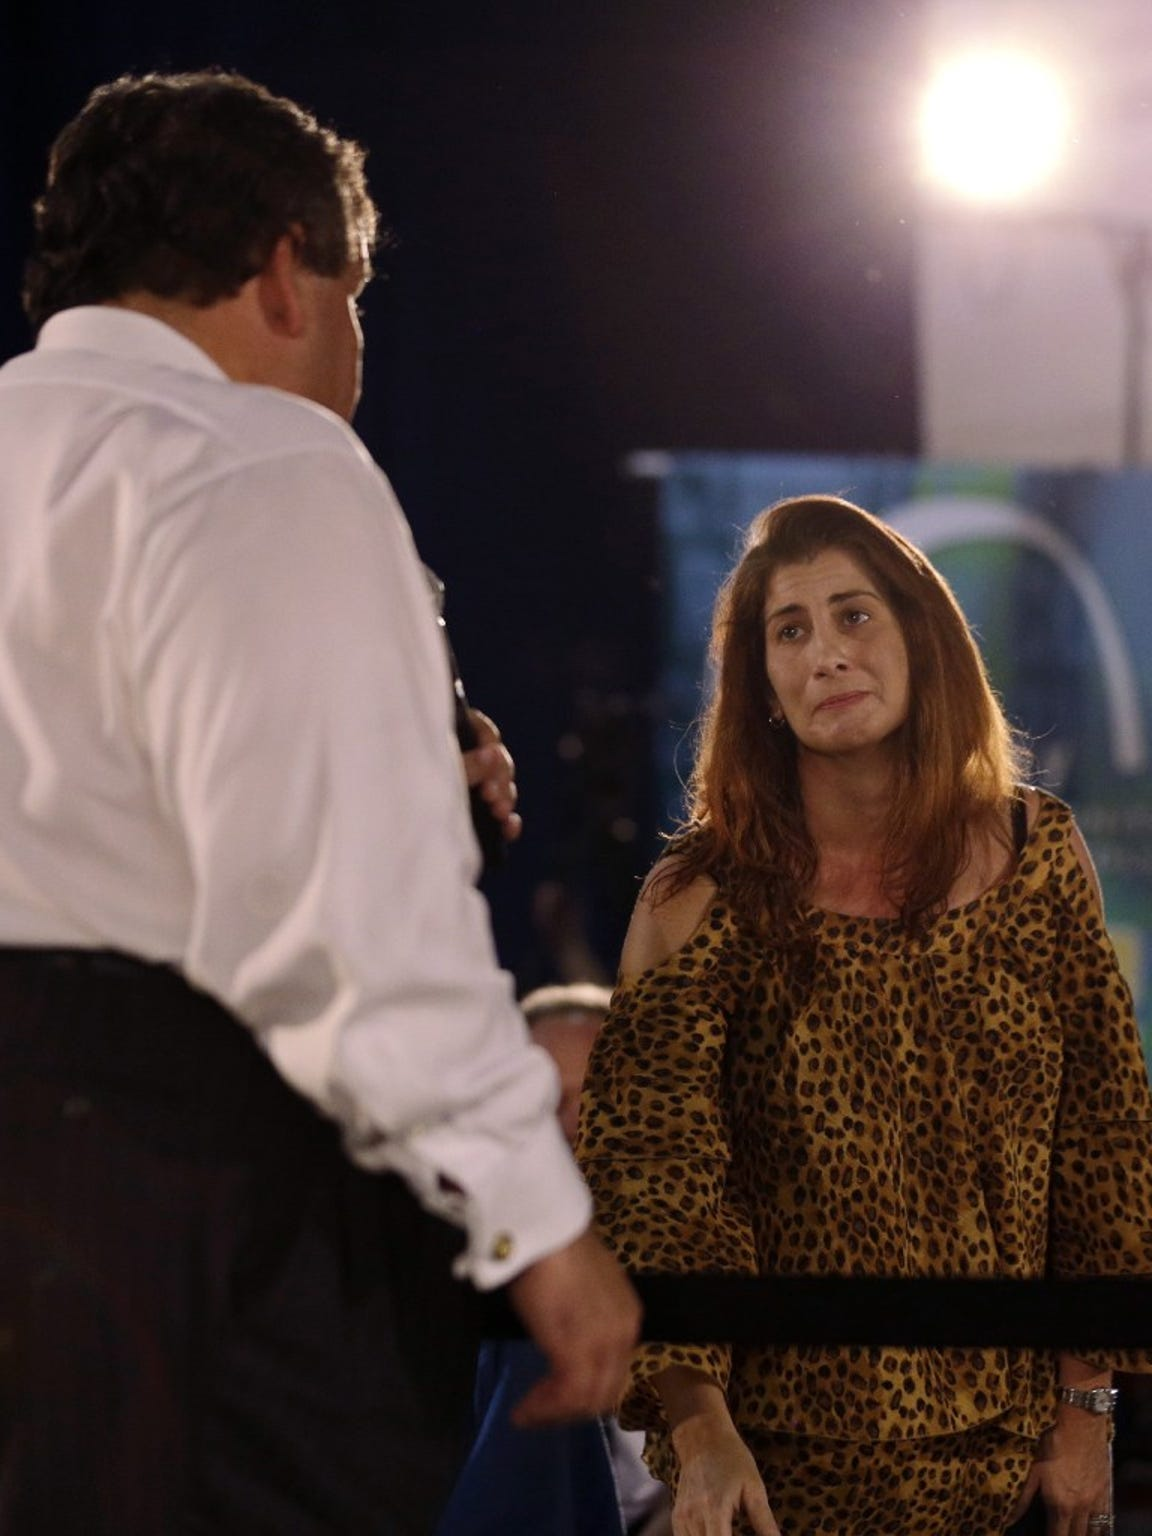 Cheryl Rubino asks Gov. Chris Christie during a 2013 town hall meeting in Branchburg to support designating the Pompton Lakes neighborhood where she grew up as a Superfund site. Christie declined.